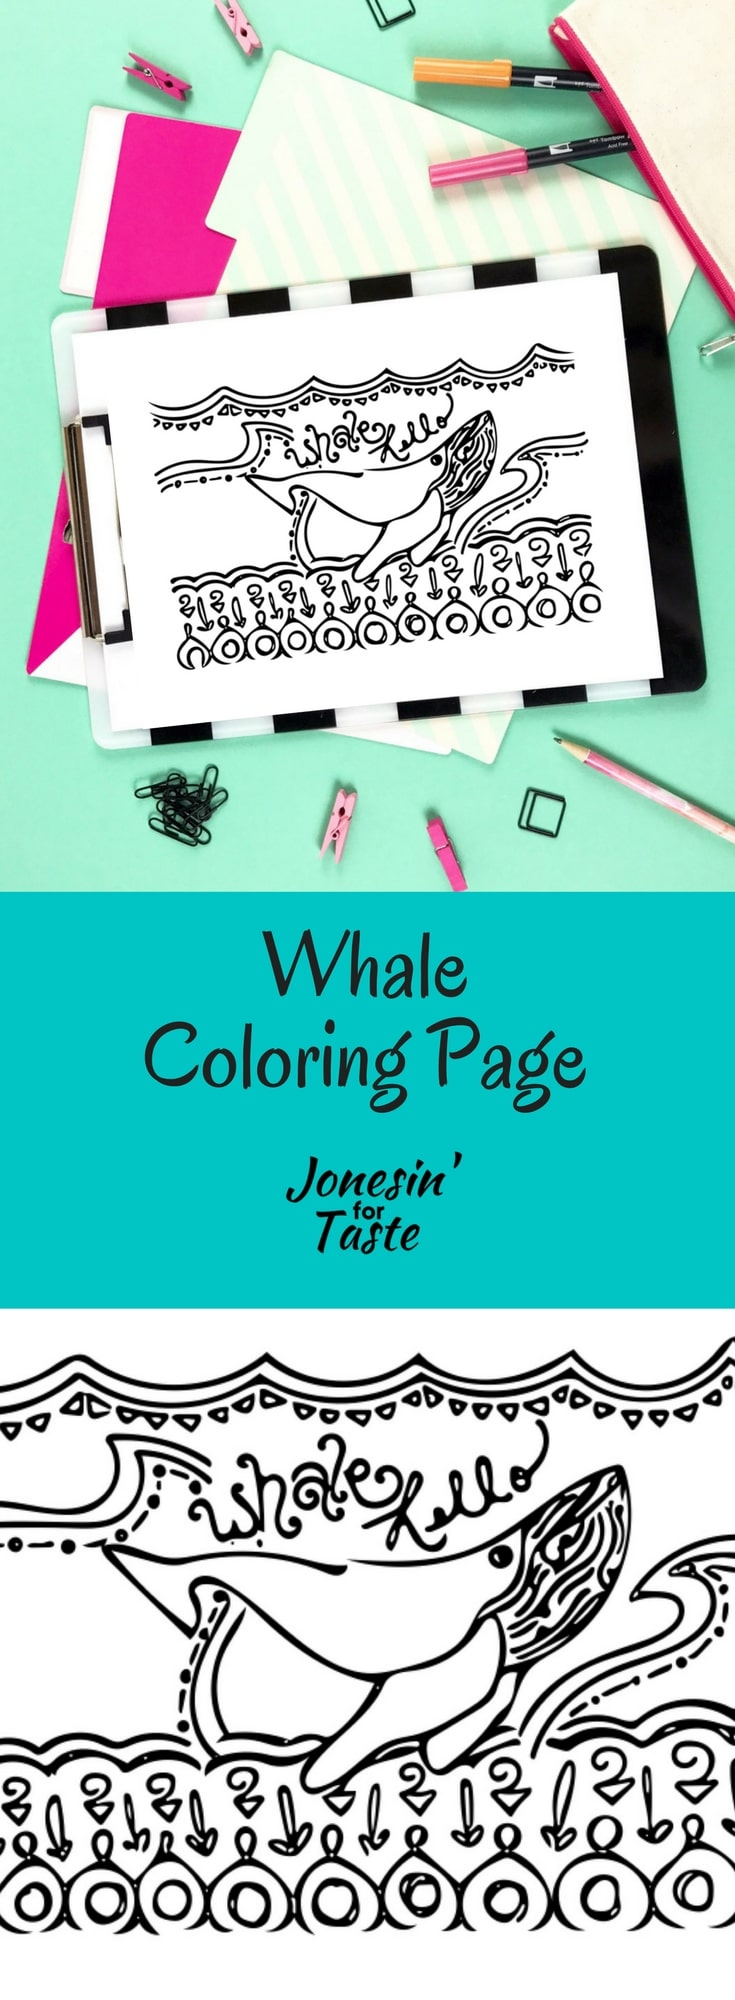 Take some time to de-stress, channel your inner child, and dream of the beautiful ocean with this whale coloring page.